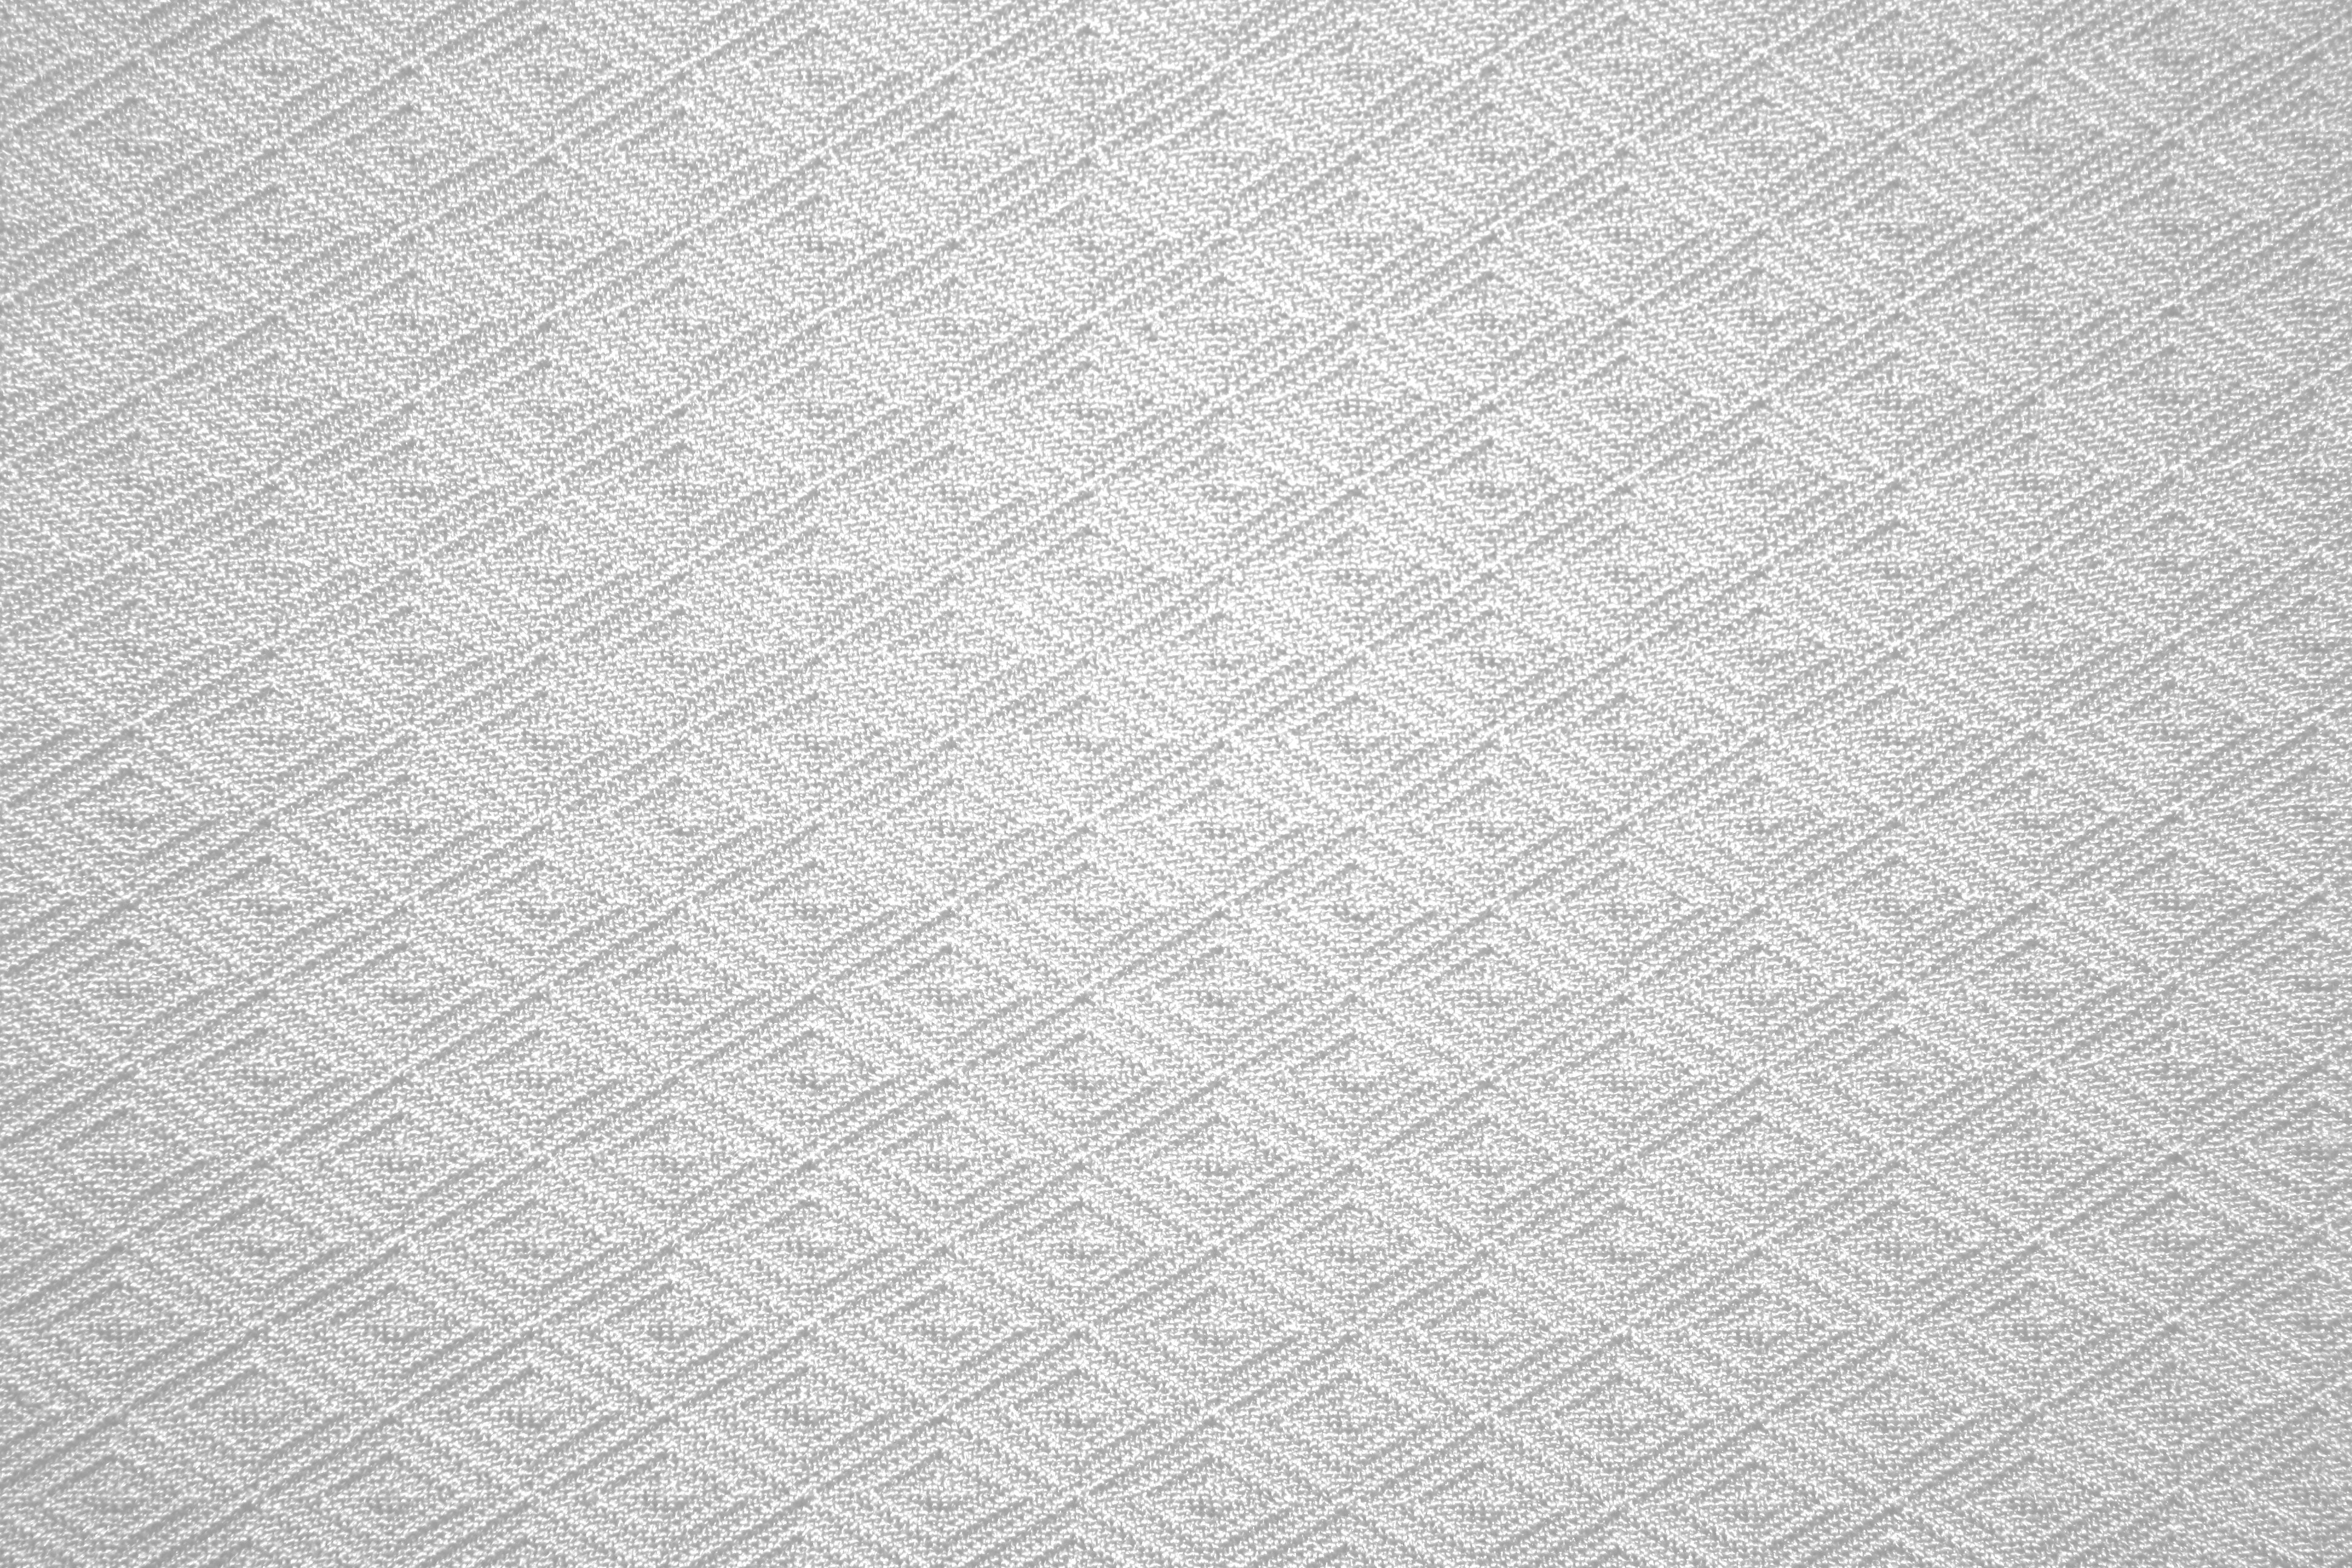 White Knit Fabric With Diamond Pattern Texture Picture